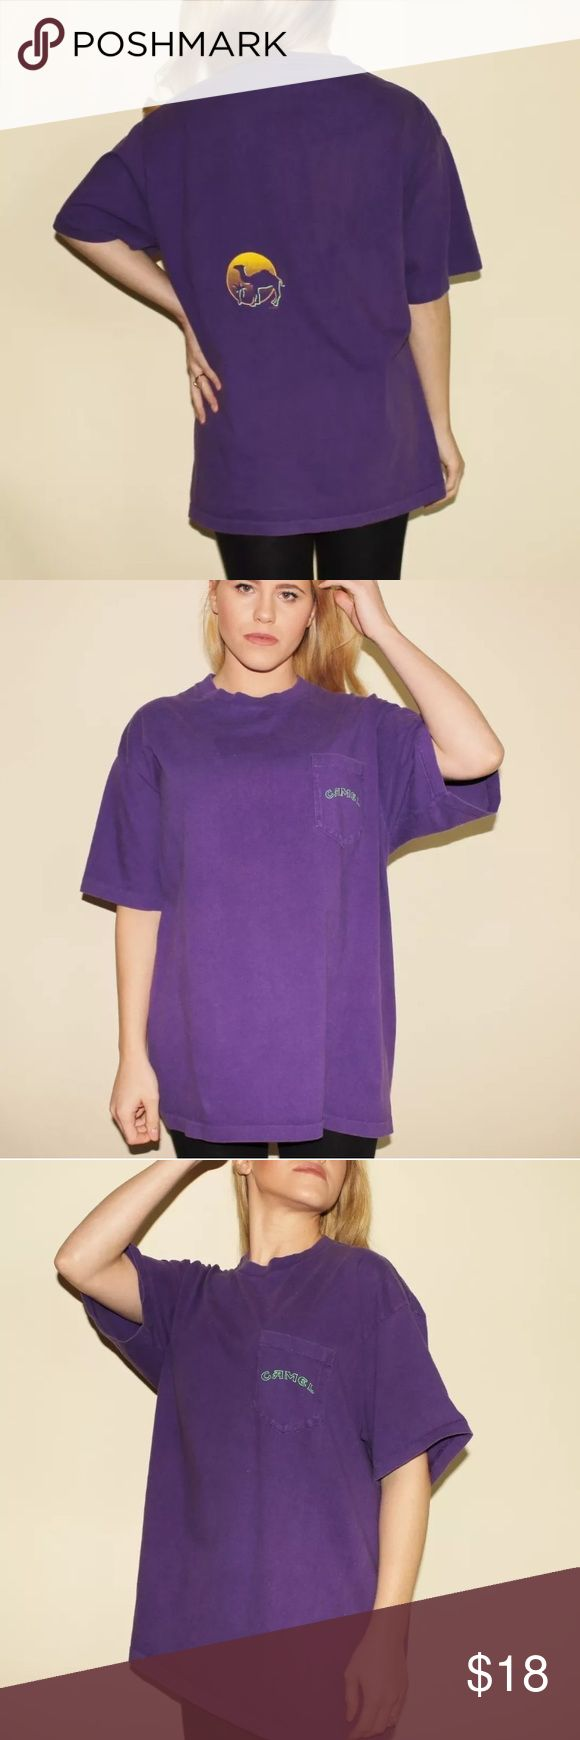 """Camel Cigarettes Tee Shirt CAMEL T Shirt Purple L  DESCRIPTION 🐪  Vintage 90s Camel cigarettes t shirt with Camel print on back. Oversized with short sleeves and the Camel logo on the chest pocket. Circa 1993. Unisex. Very good condition. Has same fading.     MEASUREMENTS 🐪  ~ Size: Best Fits a Large  ~ Size on Tag: None  ~ Shoulder to Shoulder: 21""""  ~ Sleeve Length: 8.5""""  ~ Bust: 44""""  ~ Waist: 44""""   ~ Length: 28""""   All measurements are taken by laying item flat. Bust, Waist and Hips are…"""